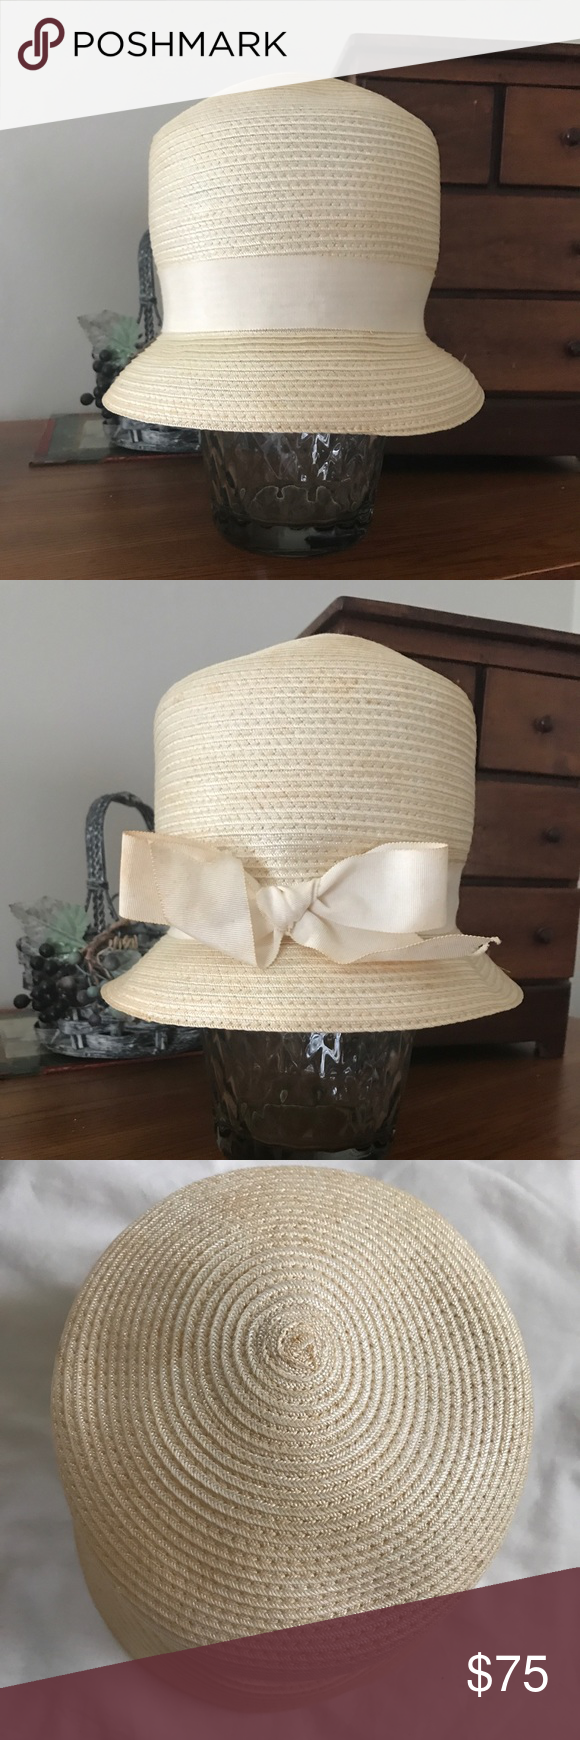 f2589fc08f0 Vintage Union Hatter Bucket Hat Beautiful Cream Colored Straw 1940 s  Vintage Union Hatter Bucket Hat with